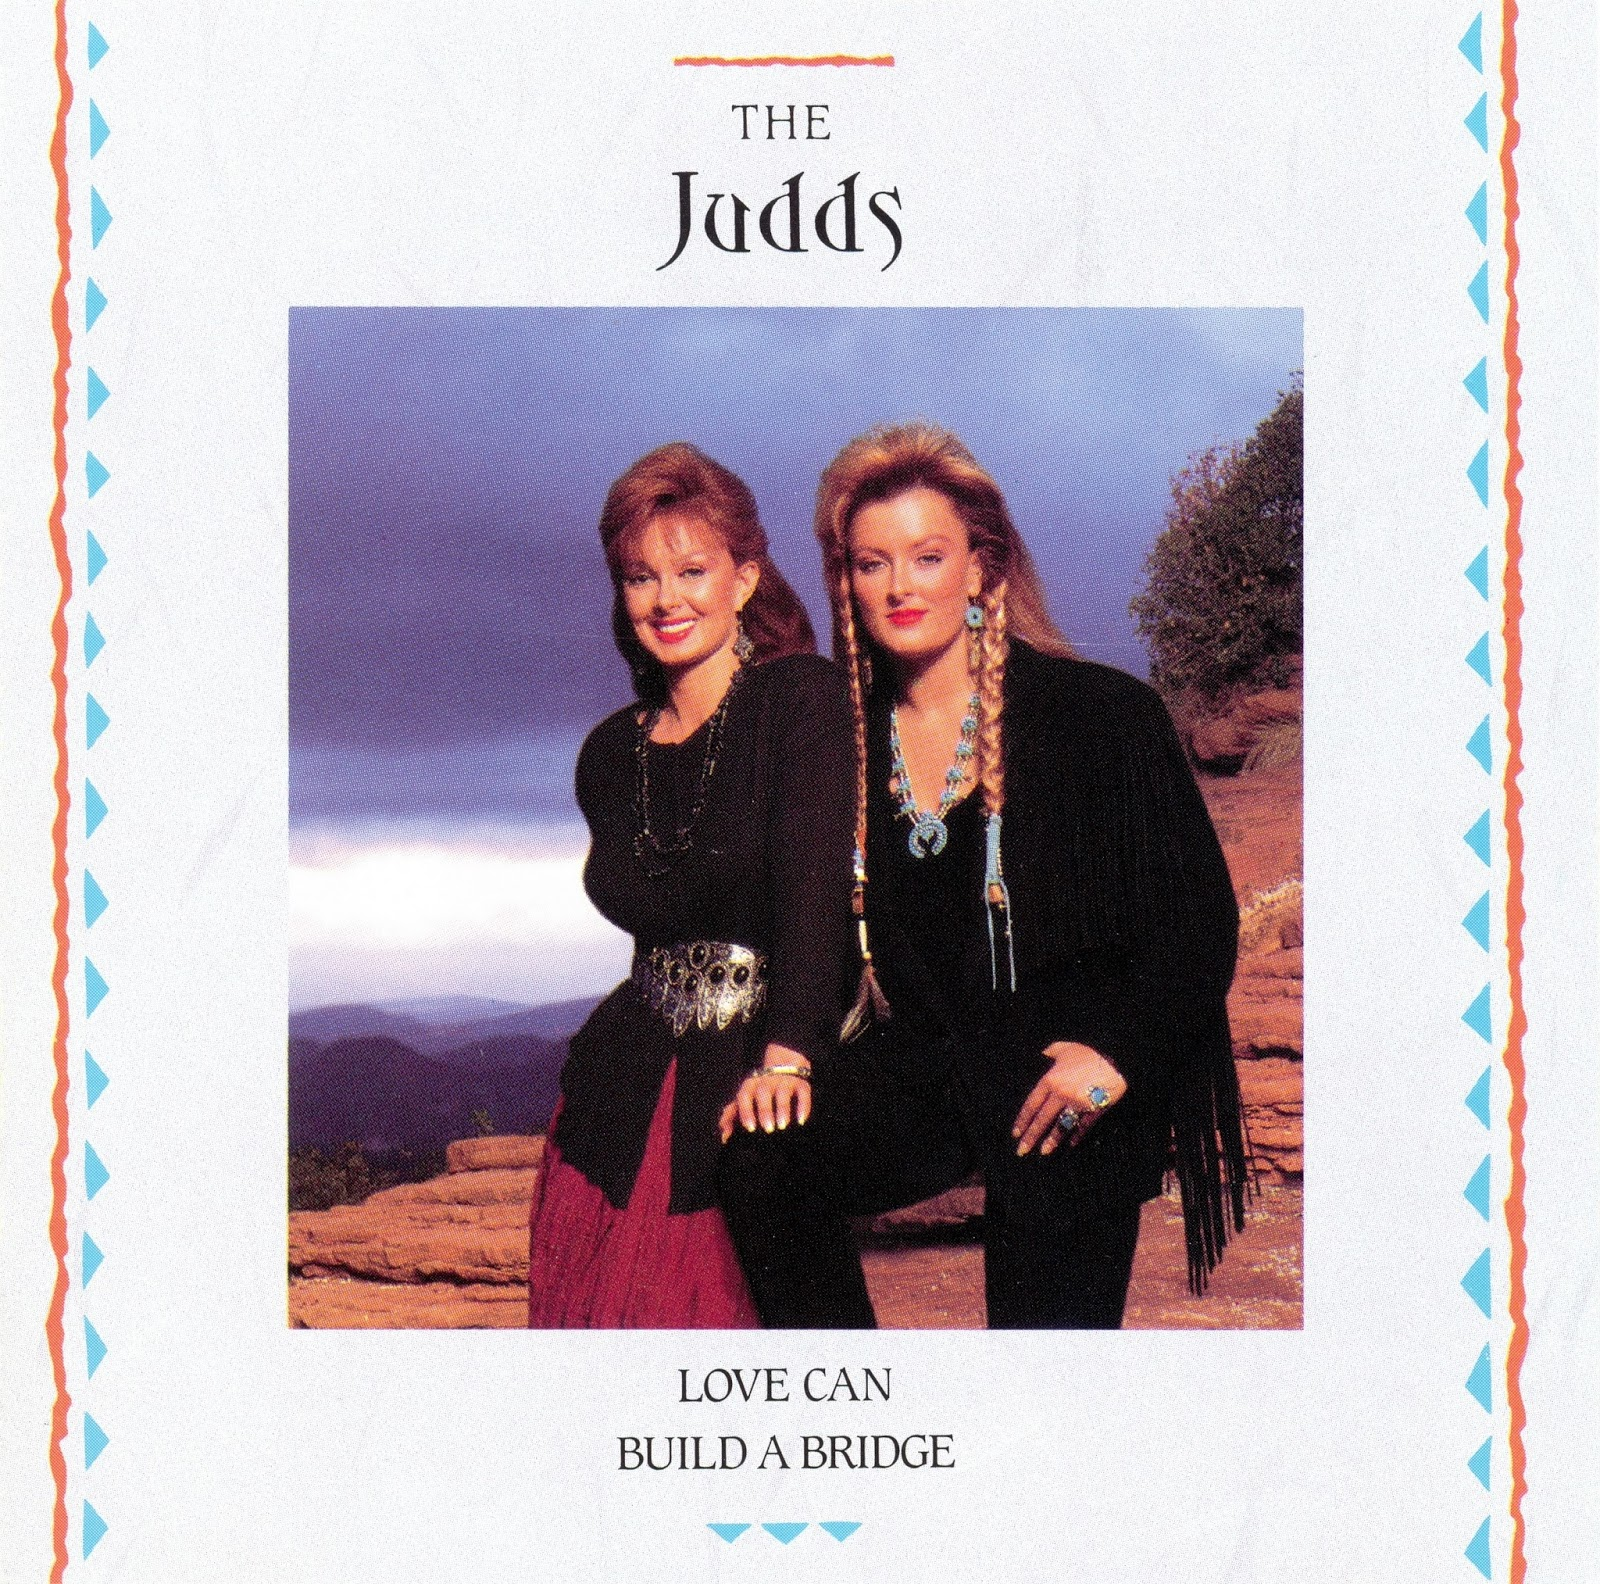 The Judds - From The Heart - 15 Career Classics